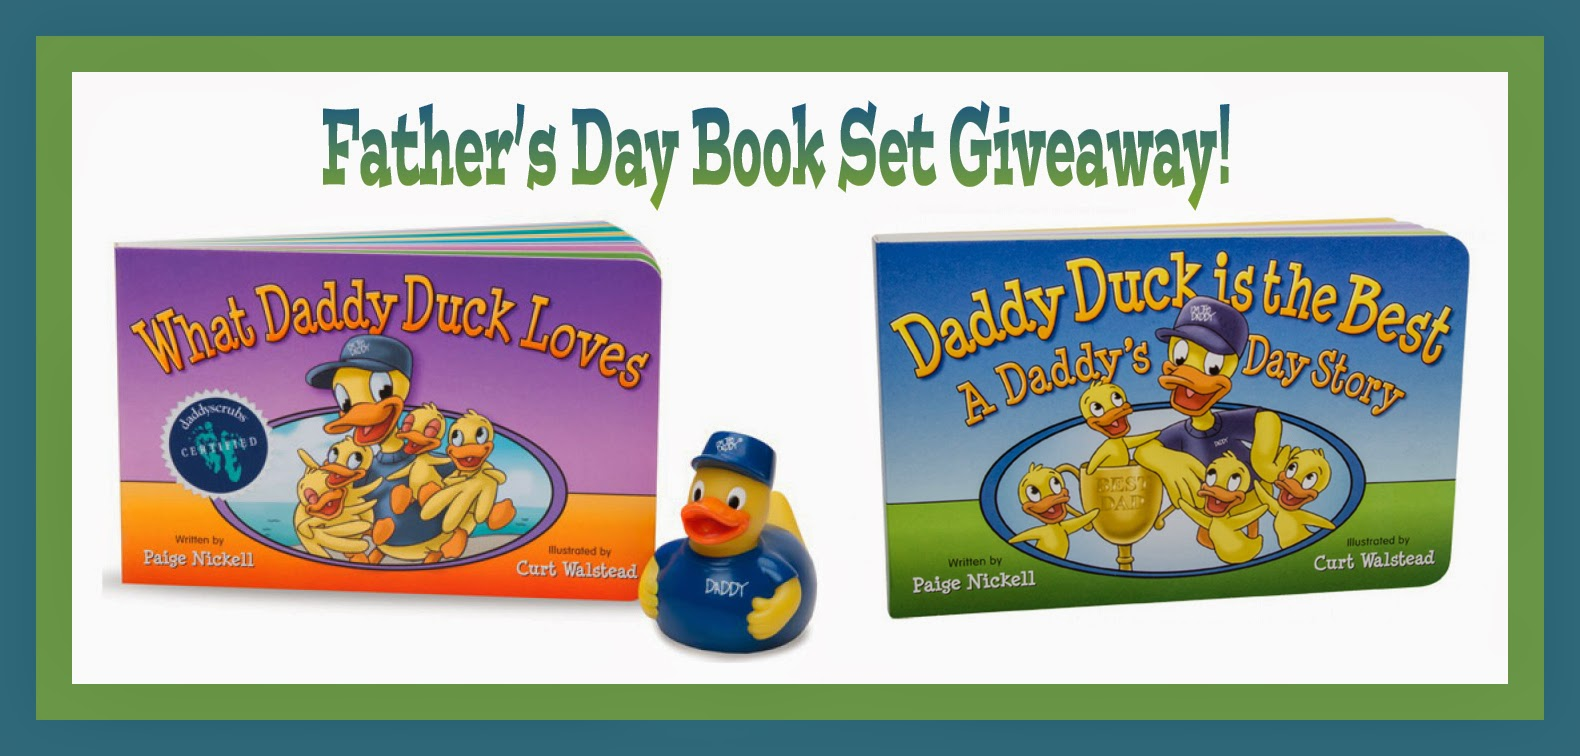 Daddy & Company Father's Day Book Set Giveaway